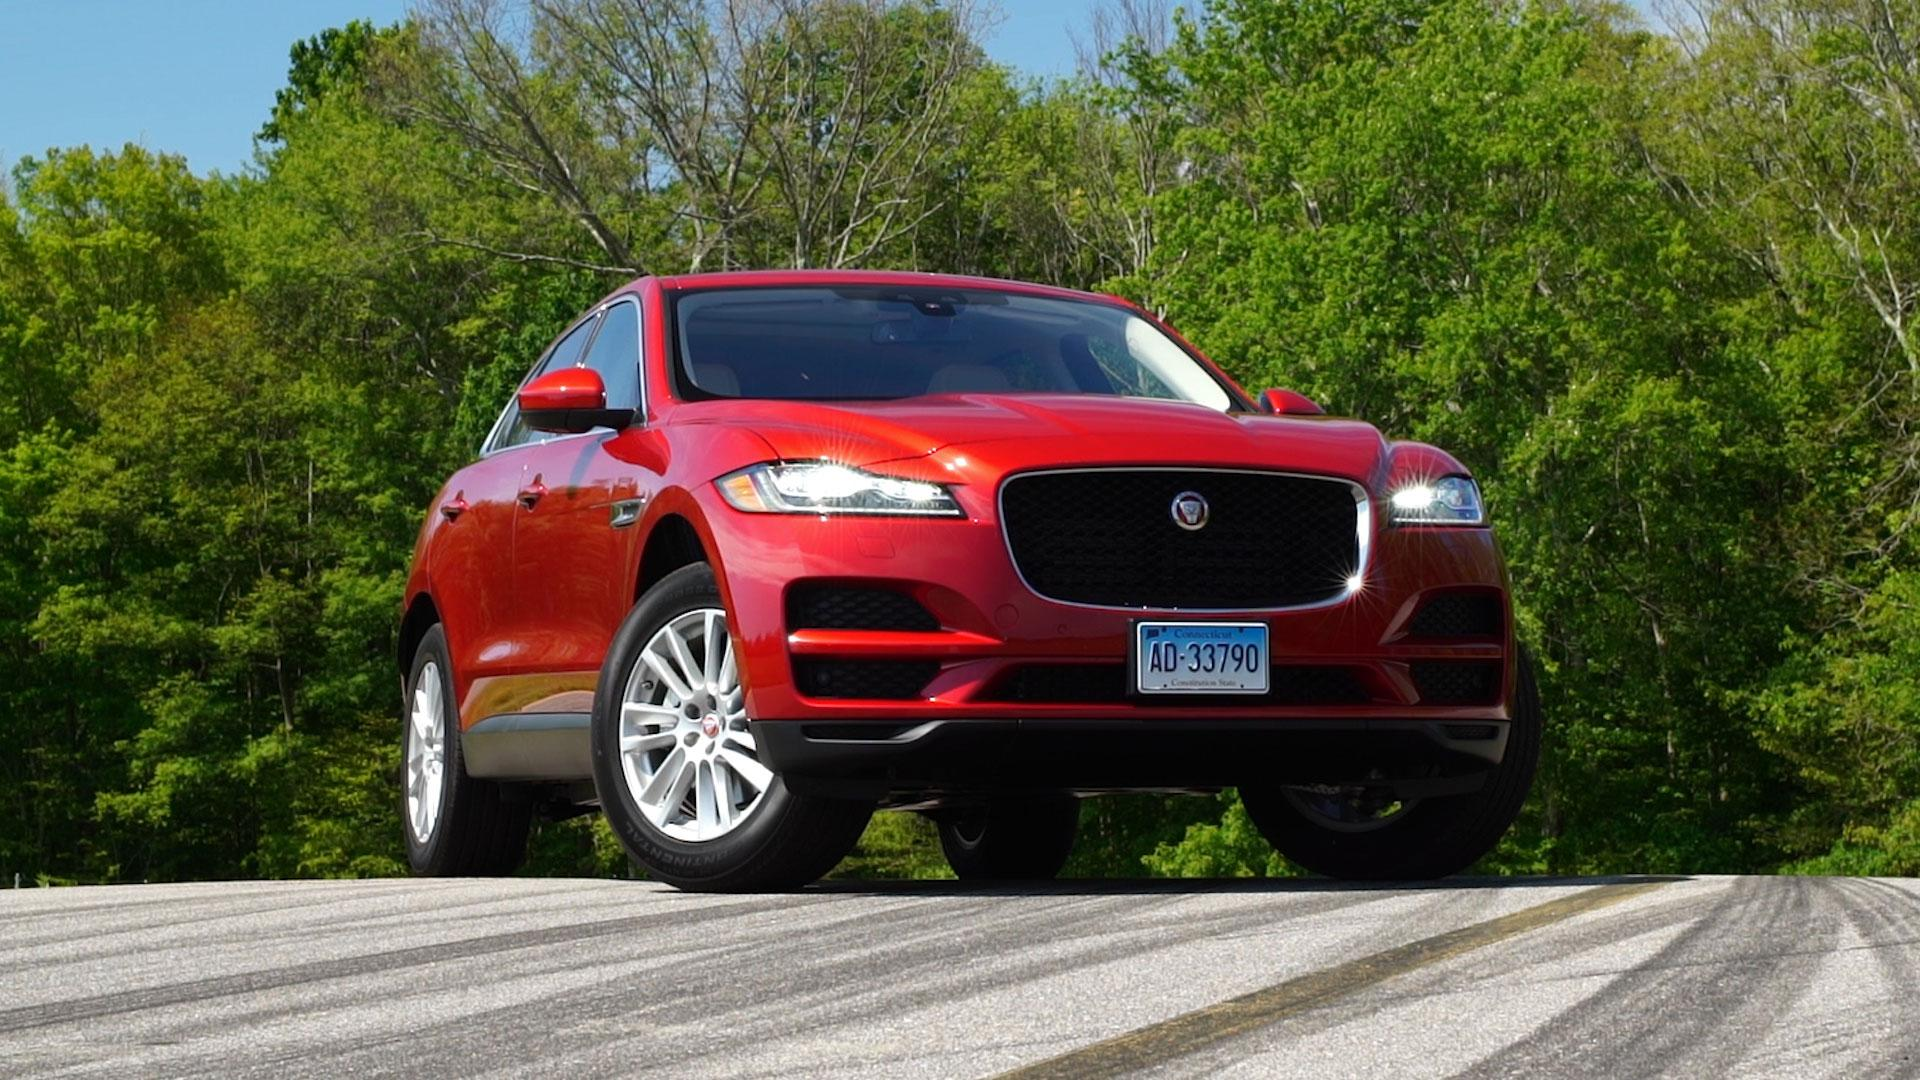 'Talking Cars' Video Podcast: Buick Envision, Jaguar F-Pace, and More